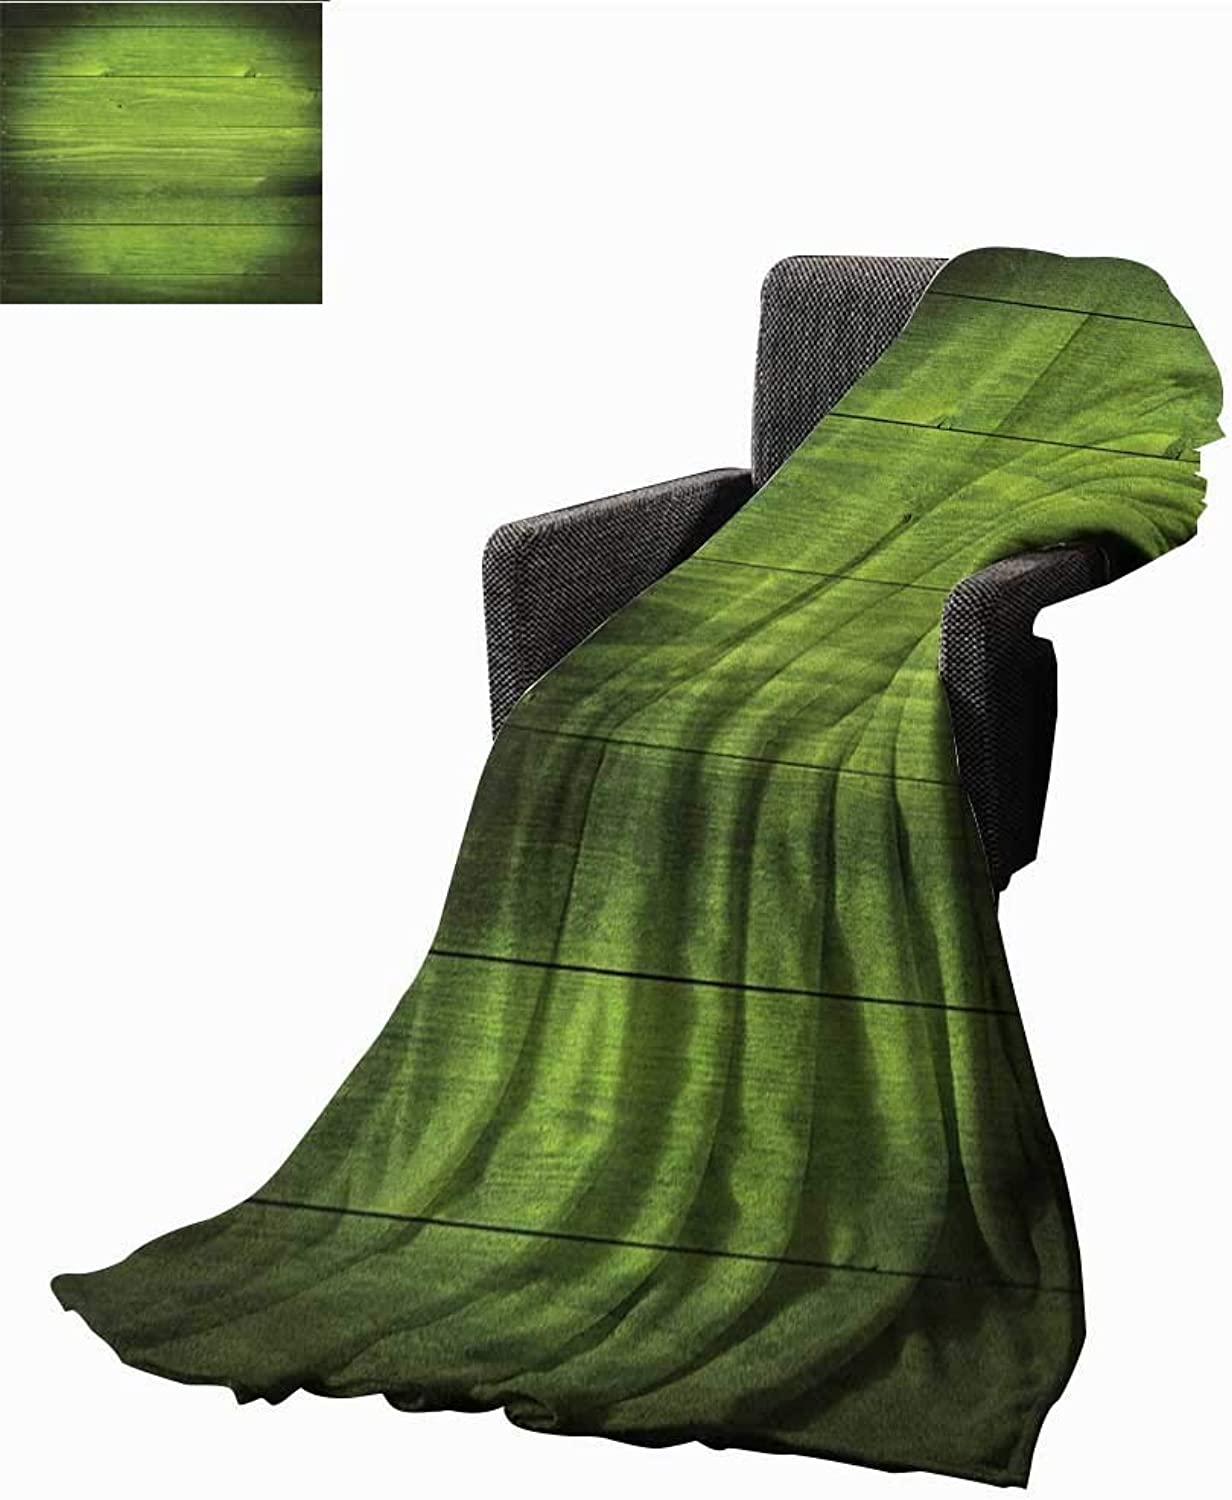 Bybyhome Bed or Couch 60  x 35 Forest Green Lightweight Blanket Horizontal Wooden Planks Rough Oak Timber Structure Surface Texture Image Lightweight All-Season Blanket Green Black